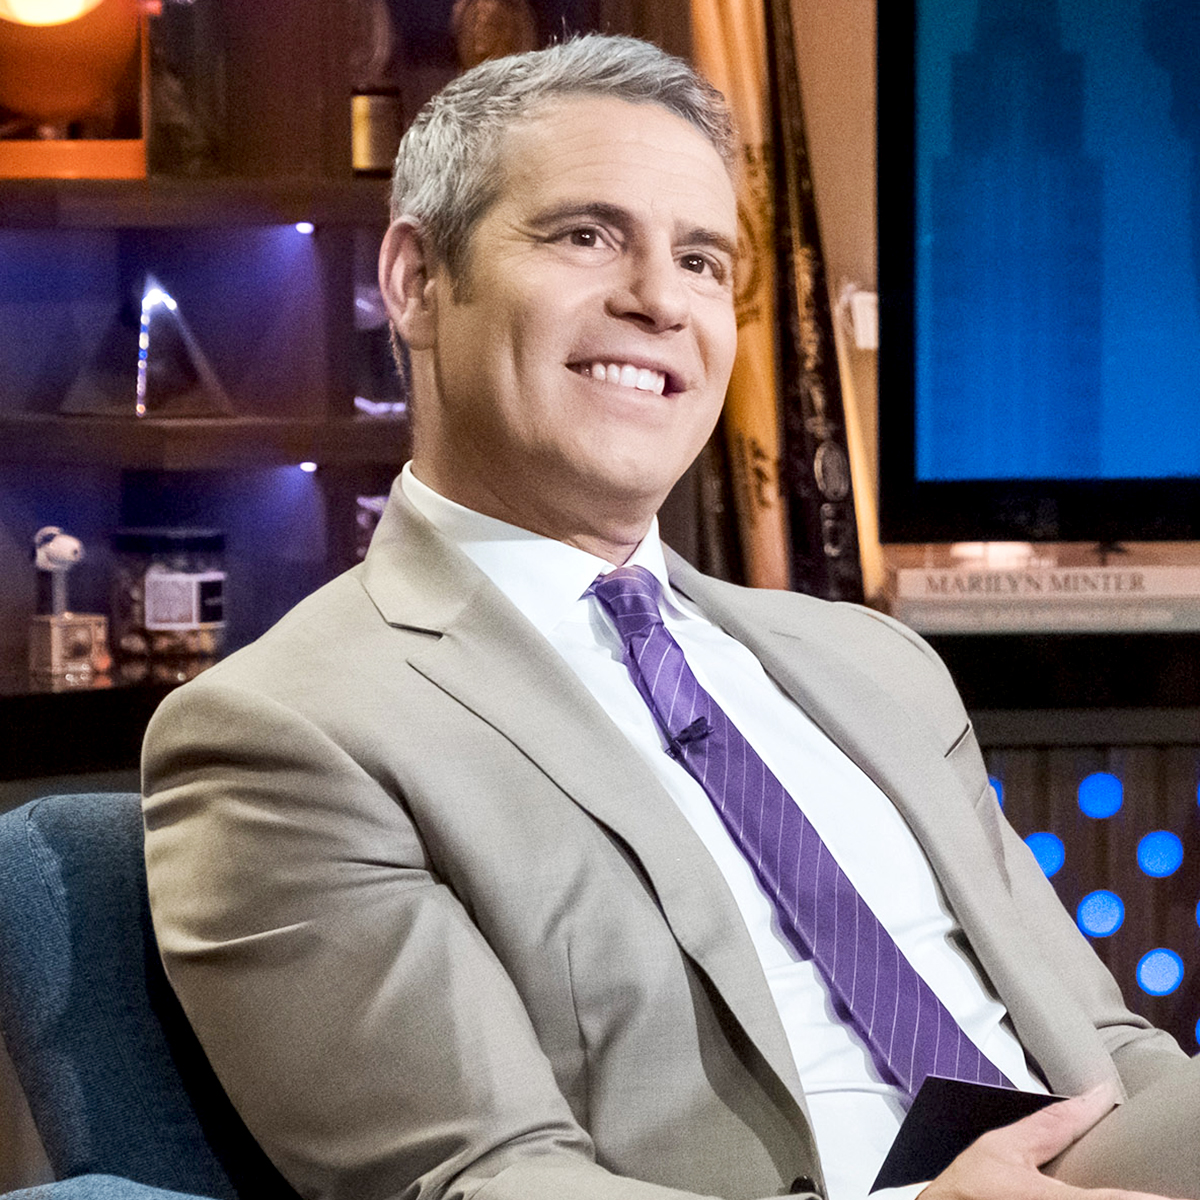 """Andy-Cohen - The Bravo producer spoke about the feud on the Sunday, April 28, episode of Watch What Happens Live With Andy Cohen . """"With Monday almost upon us and 50's Instagram posts not slowing down, I can't say how this will end, but I can say I've learned something,"""" Cohen said after attempting to explain the drama."""